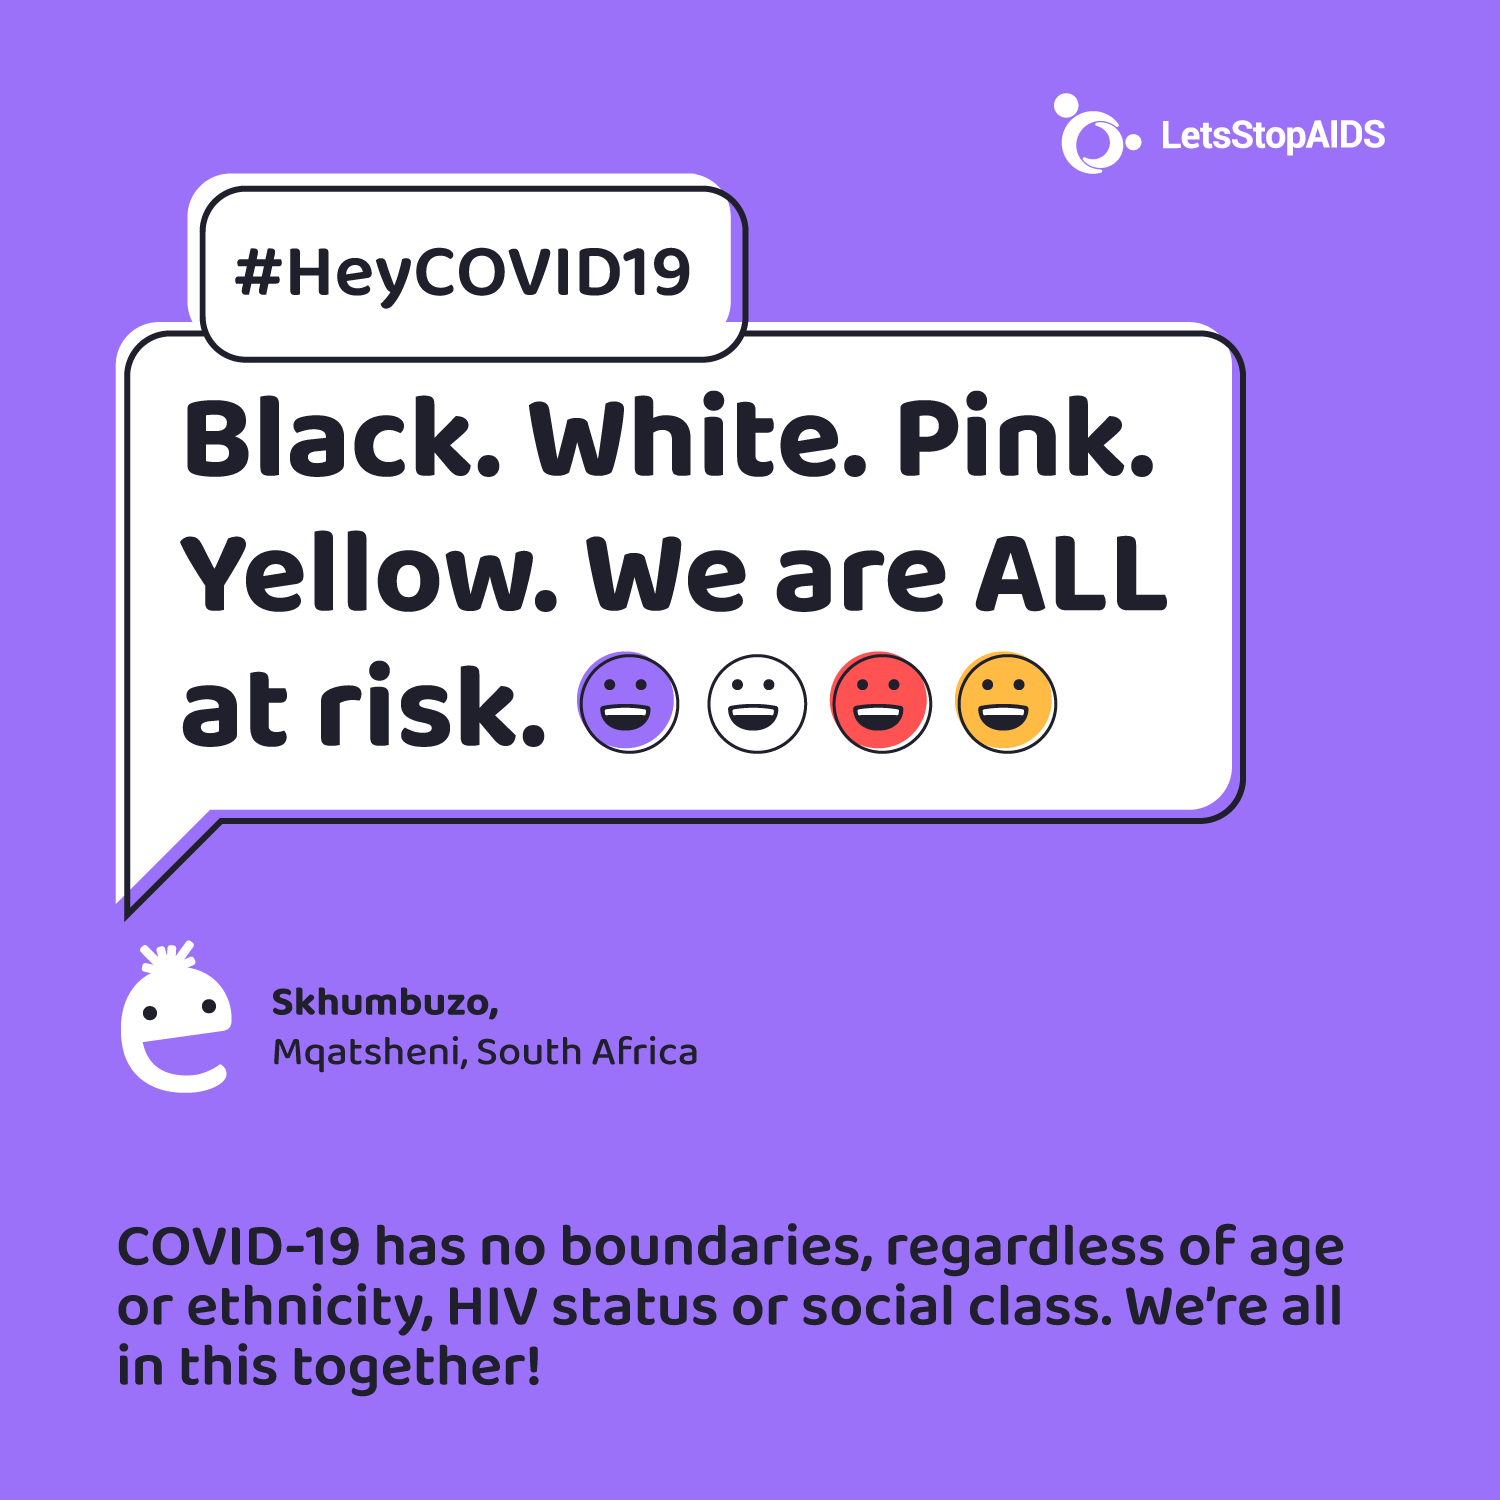 Black. White. Pink. Yellow. We are ALL at risk.